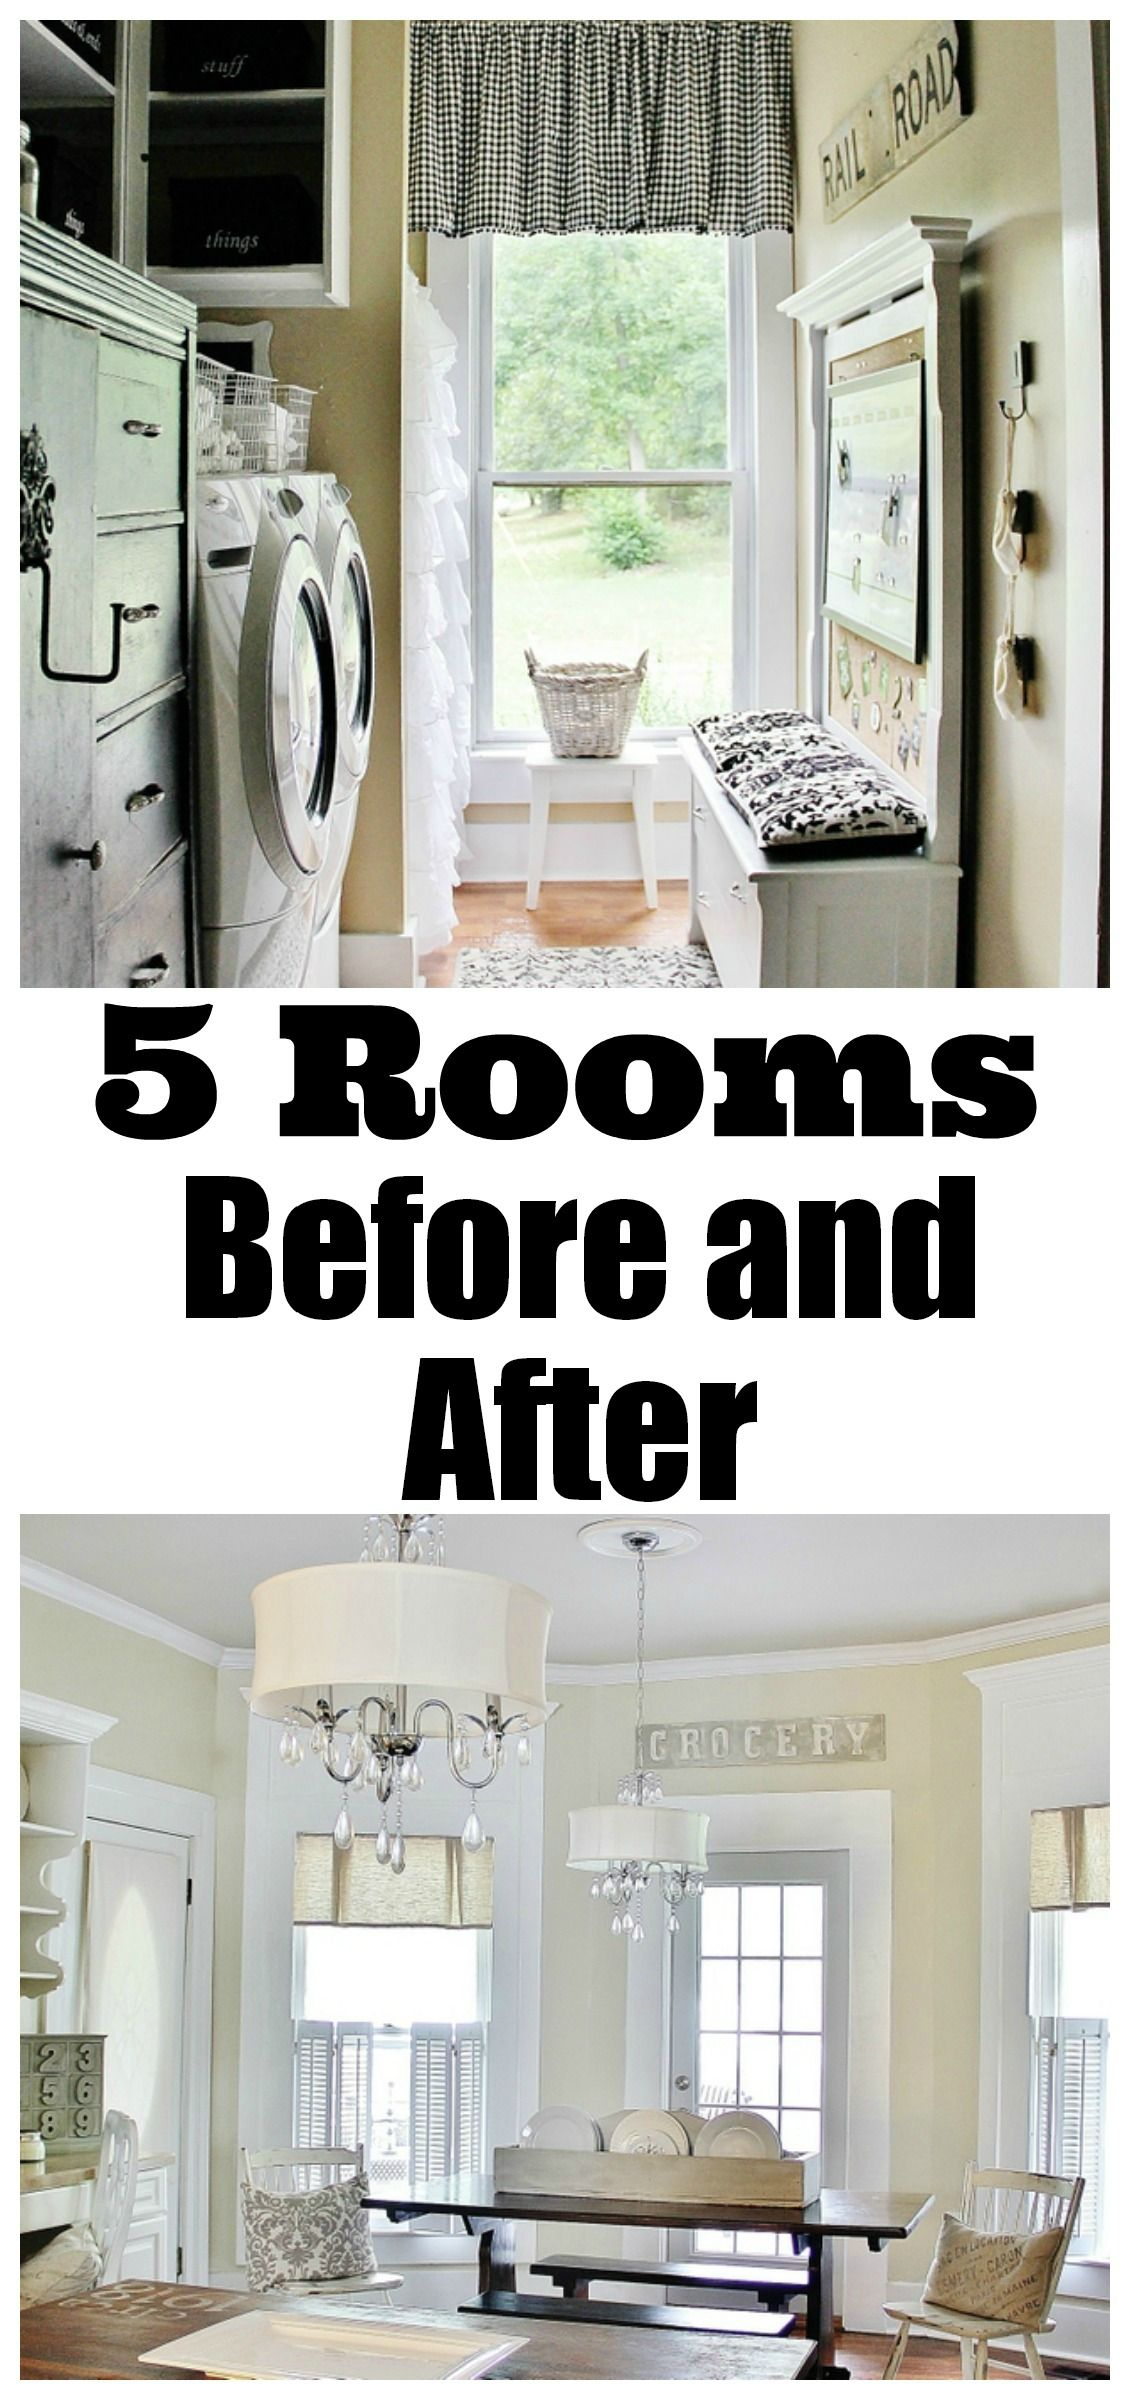 Five Before And After Room Makeovers Thistlewood Farm Home Decor Room Makeover Home #small #living #room #makeover #before #and #after